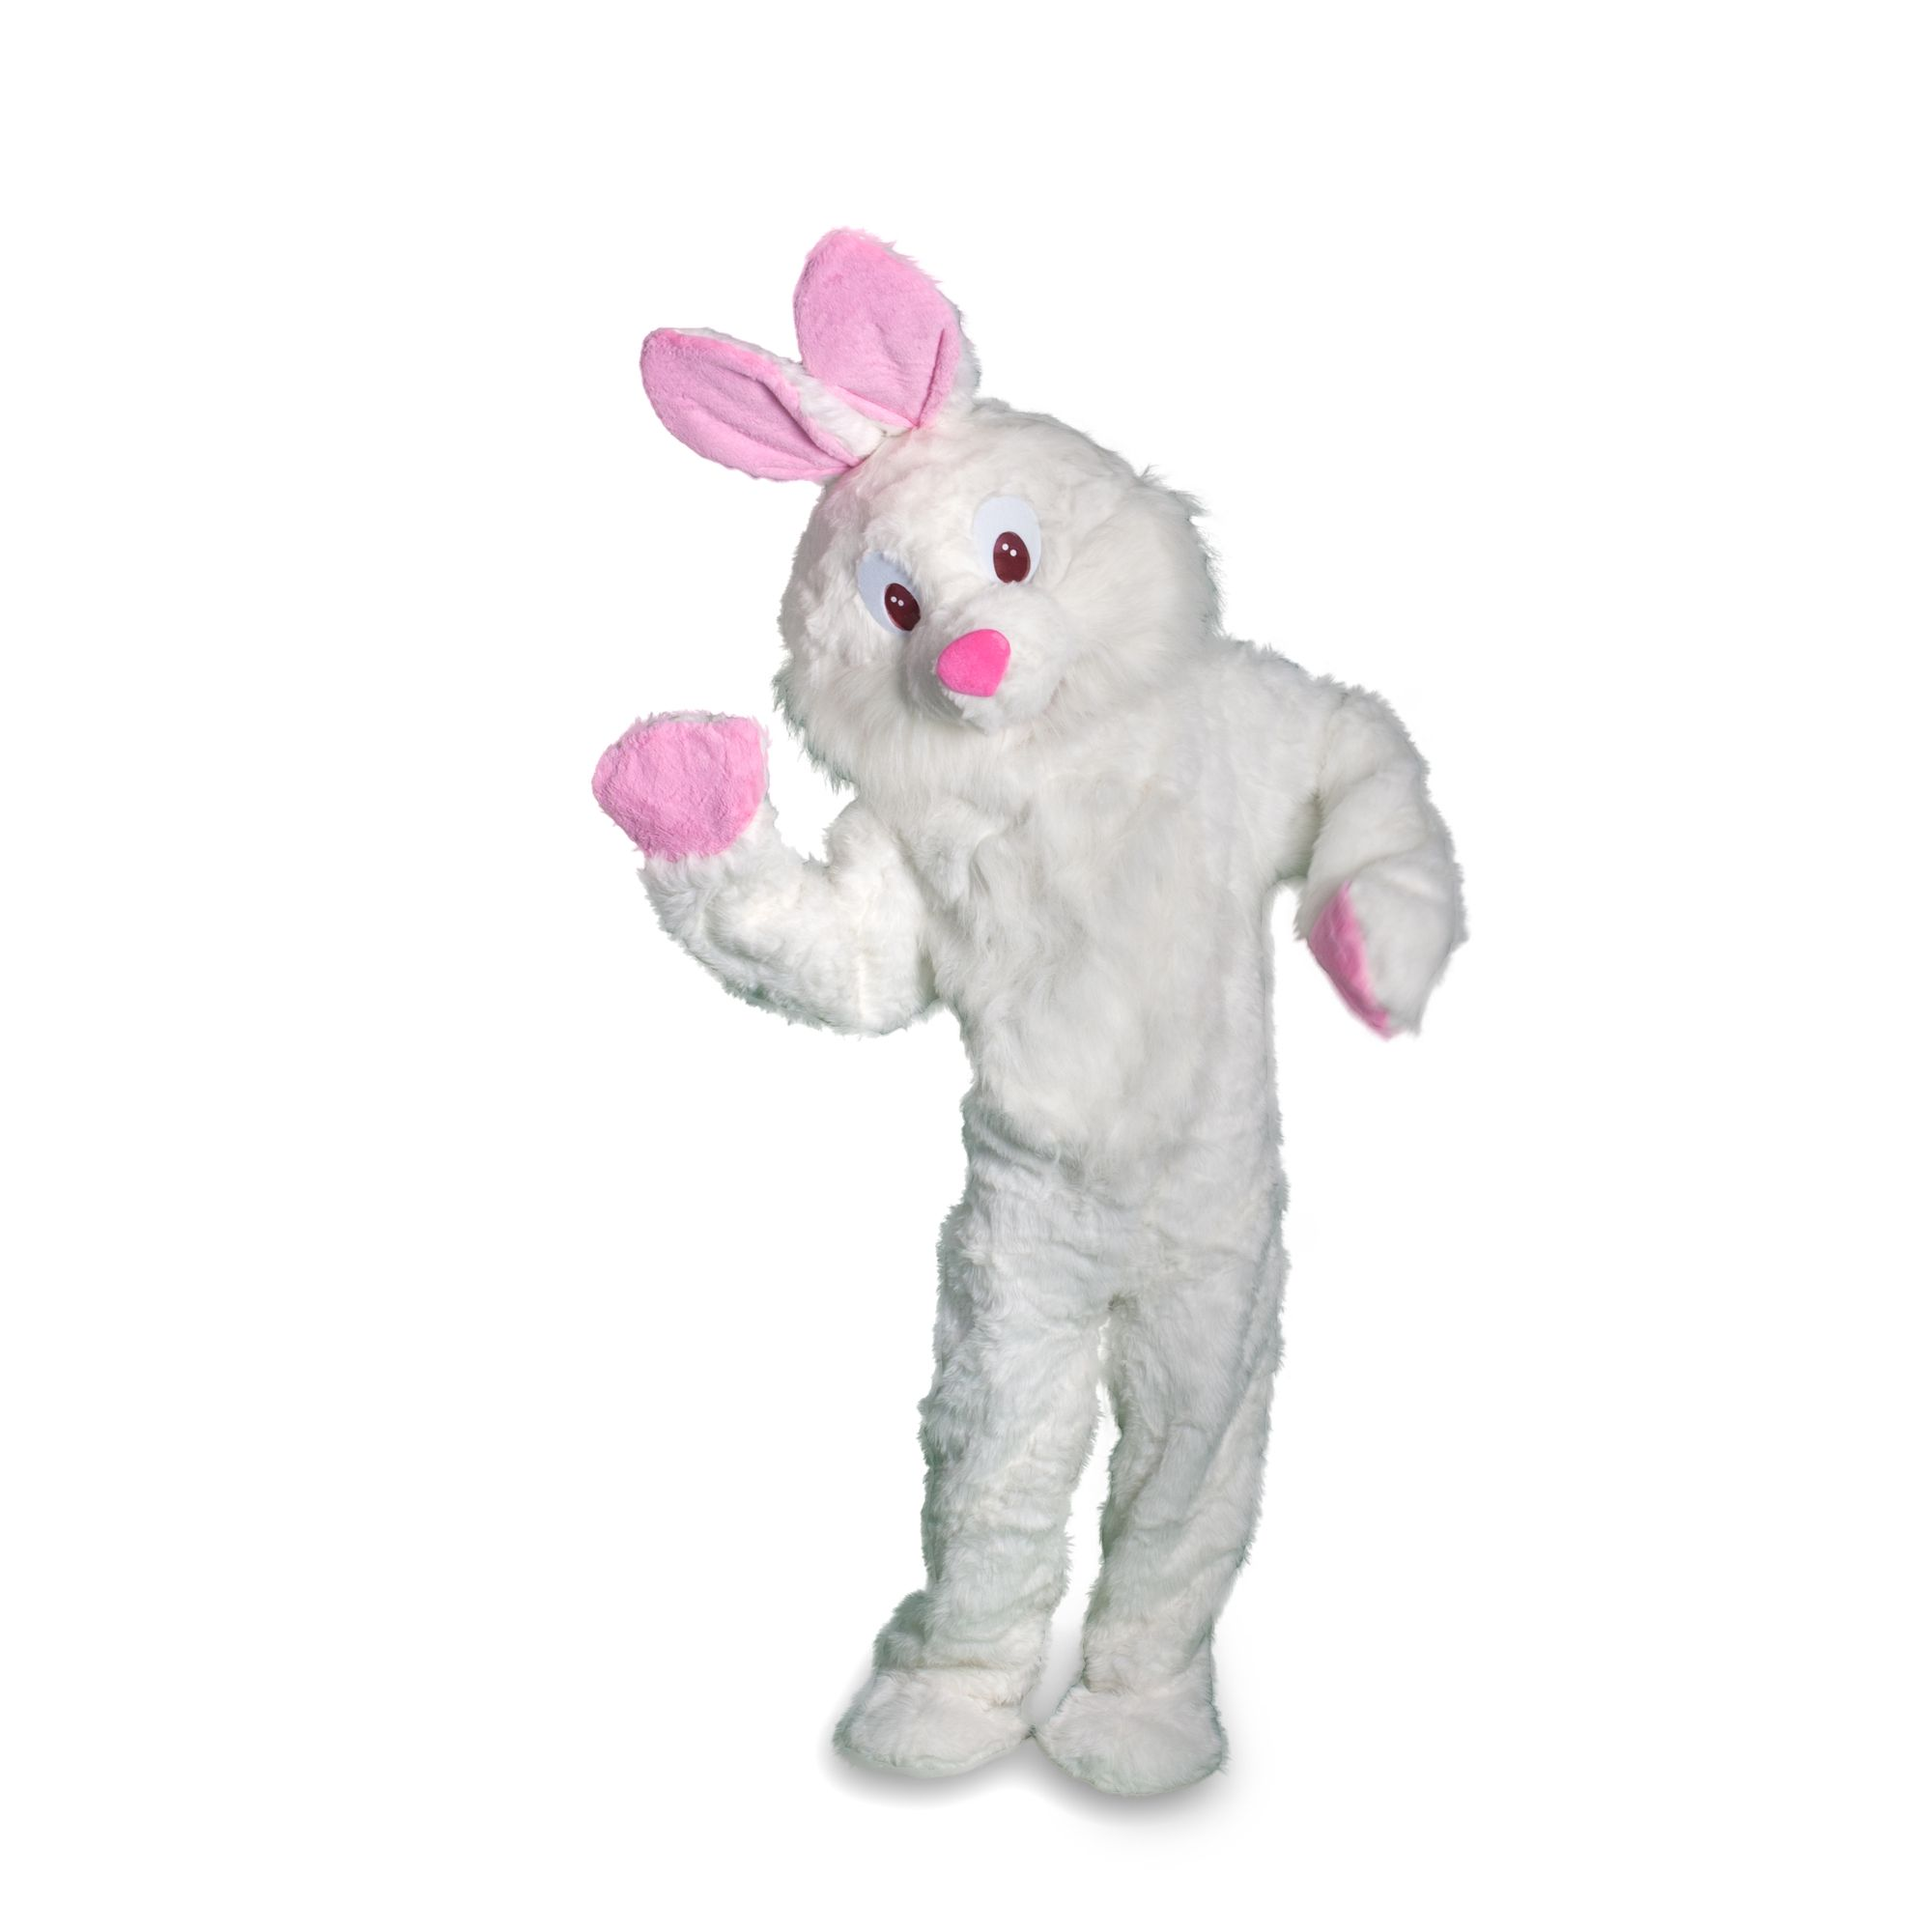 Rabbit Mascot Long Hair Easter Costume